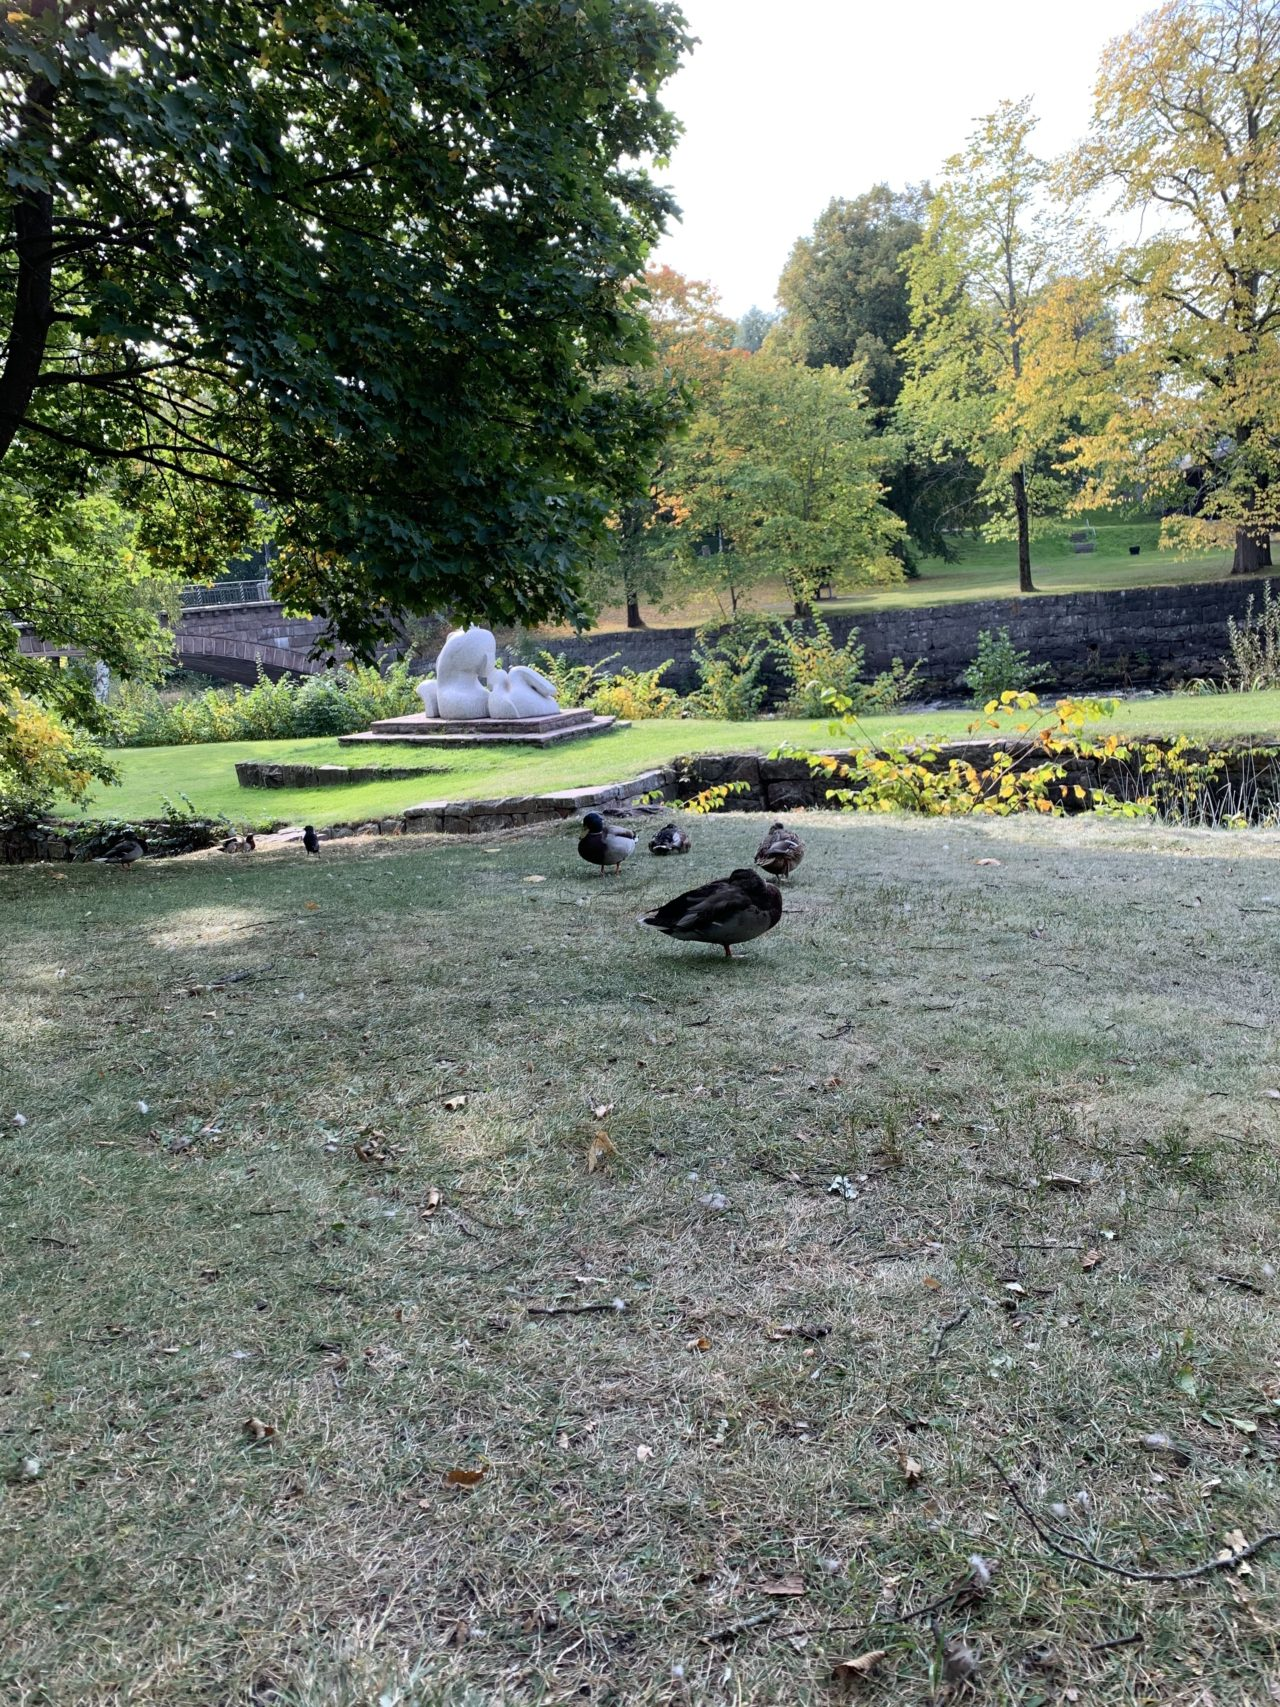 Ducks Stand Together In A Park In The Autumn